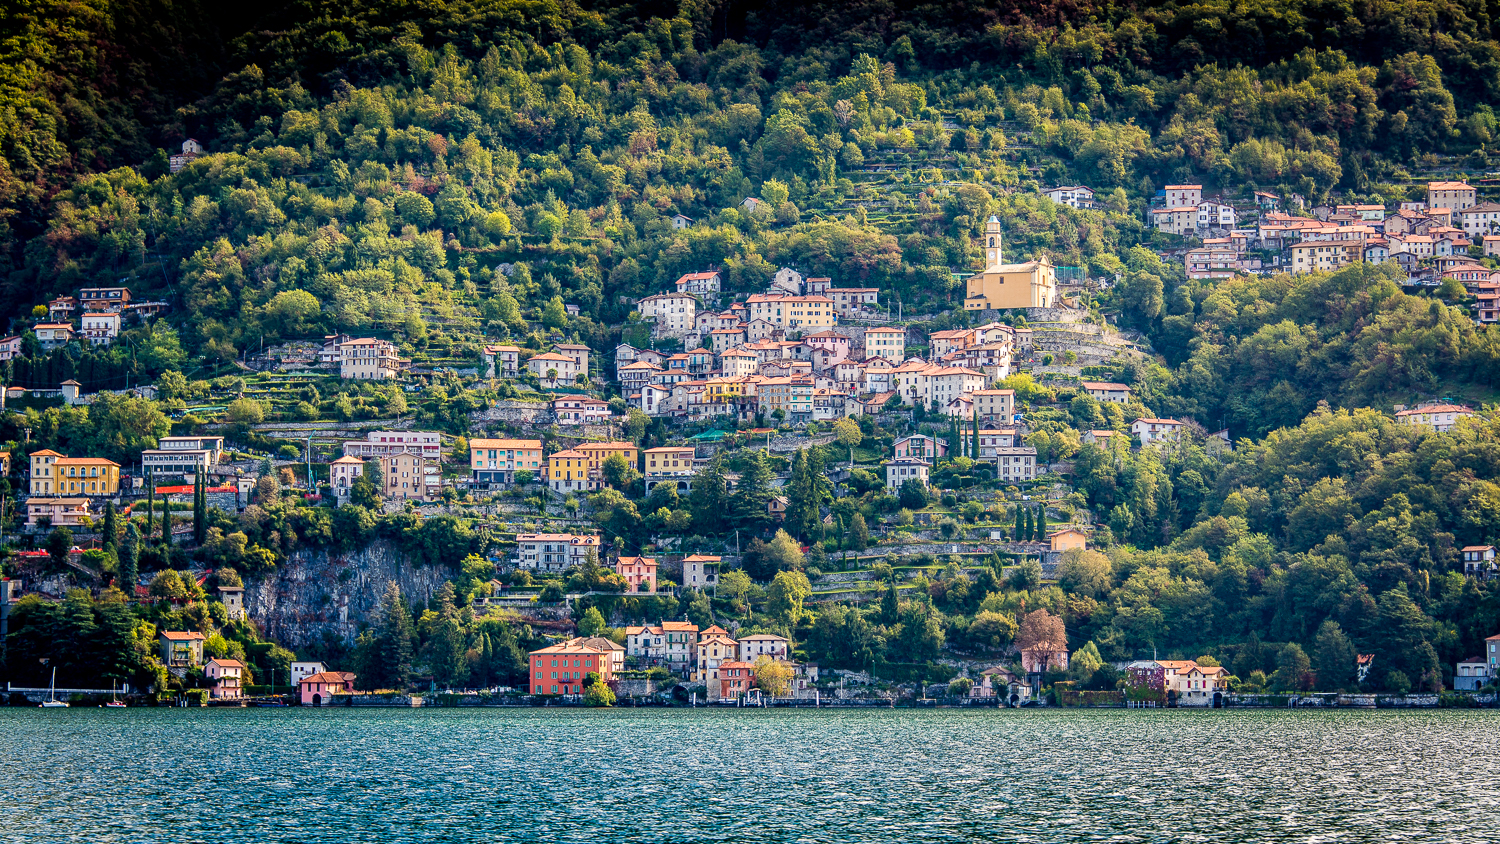 Just one of the many lakeside towns you will see on your slow-boat journey to Bellagio